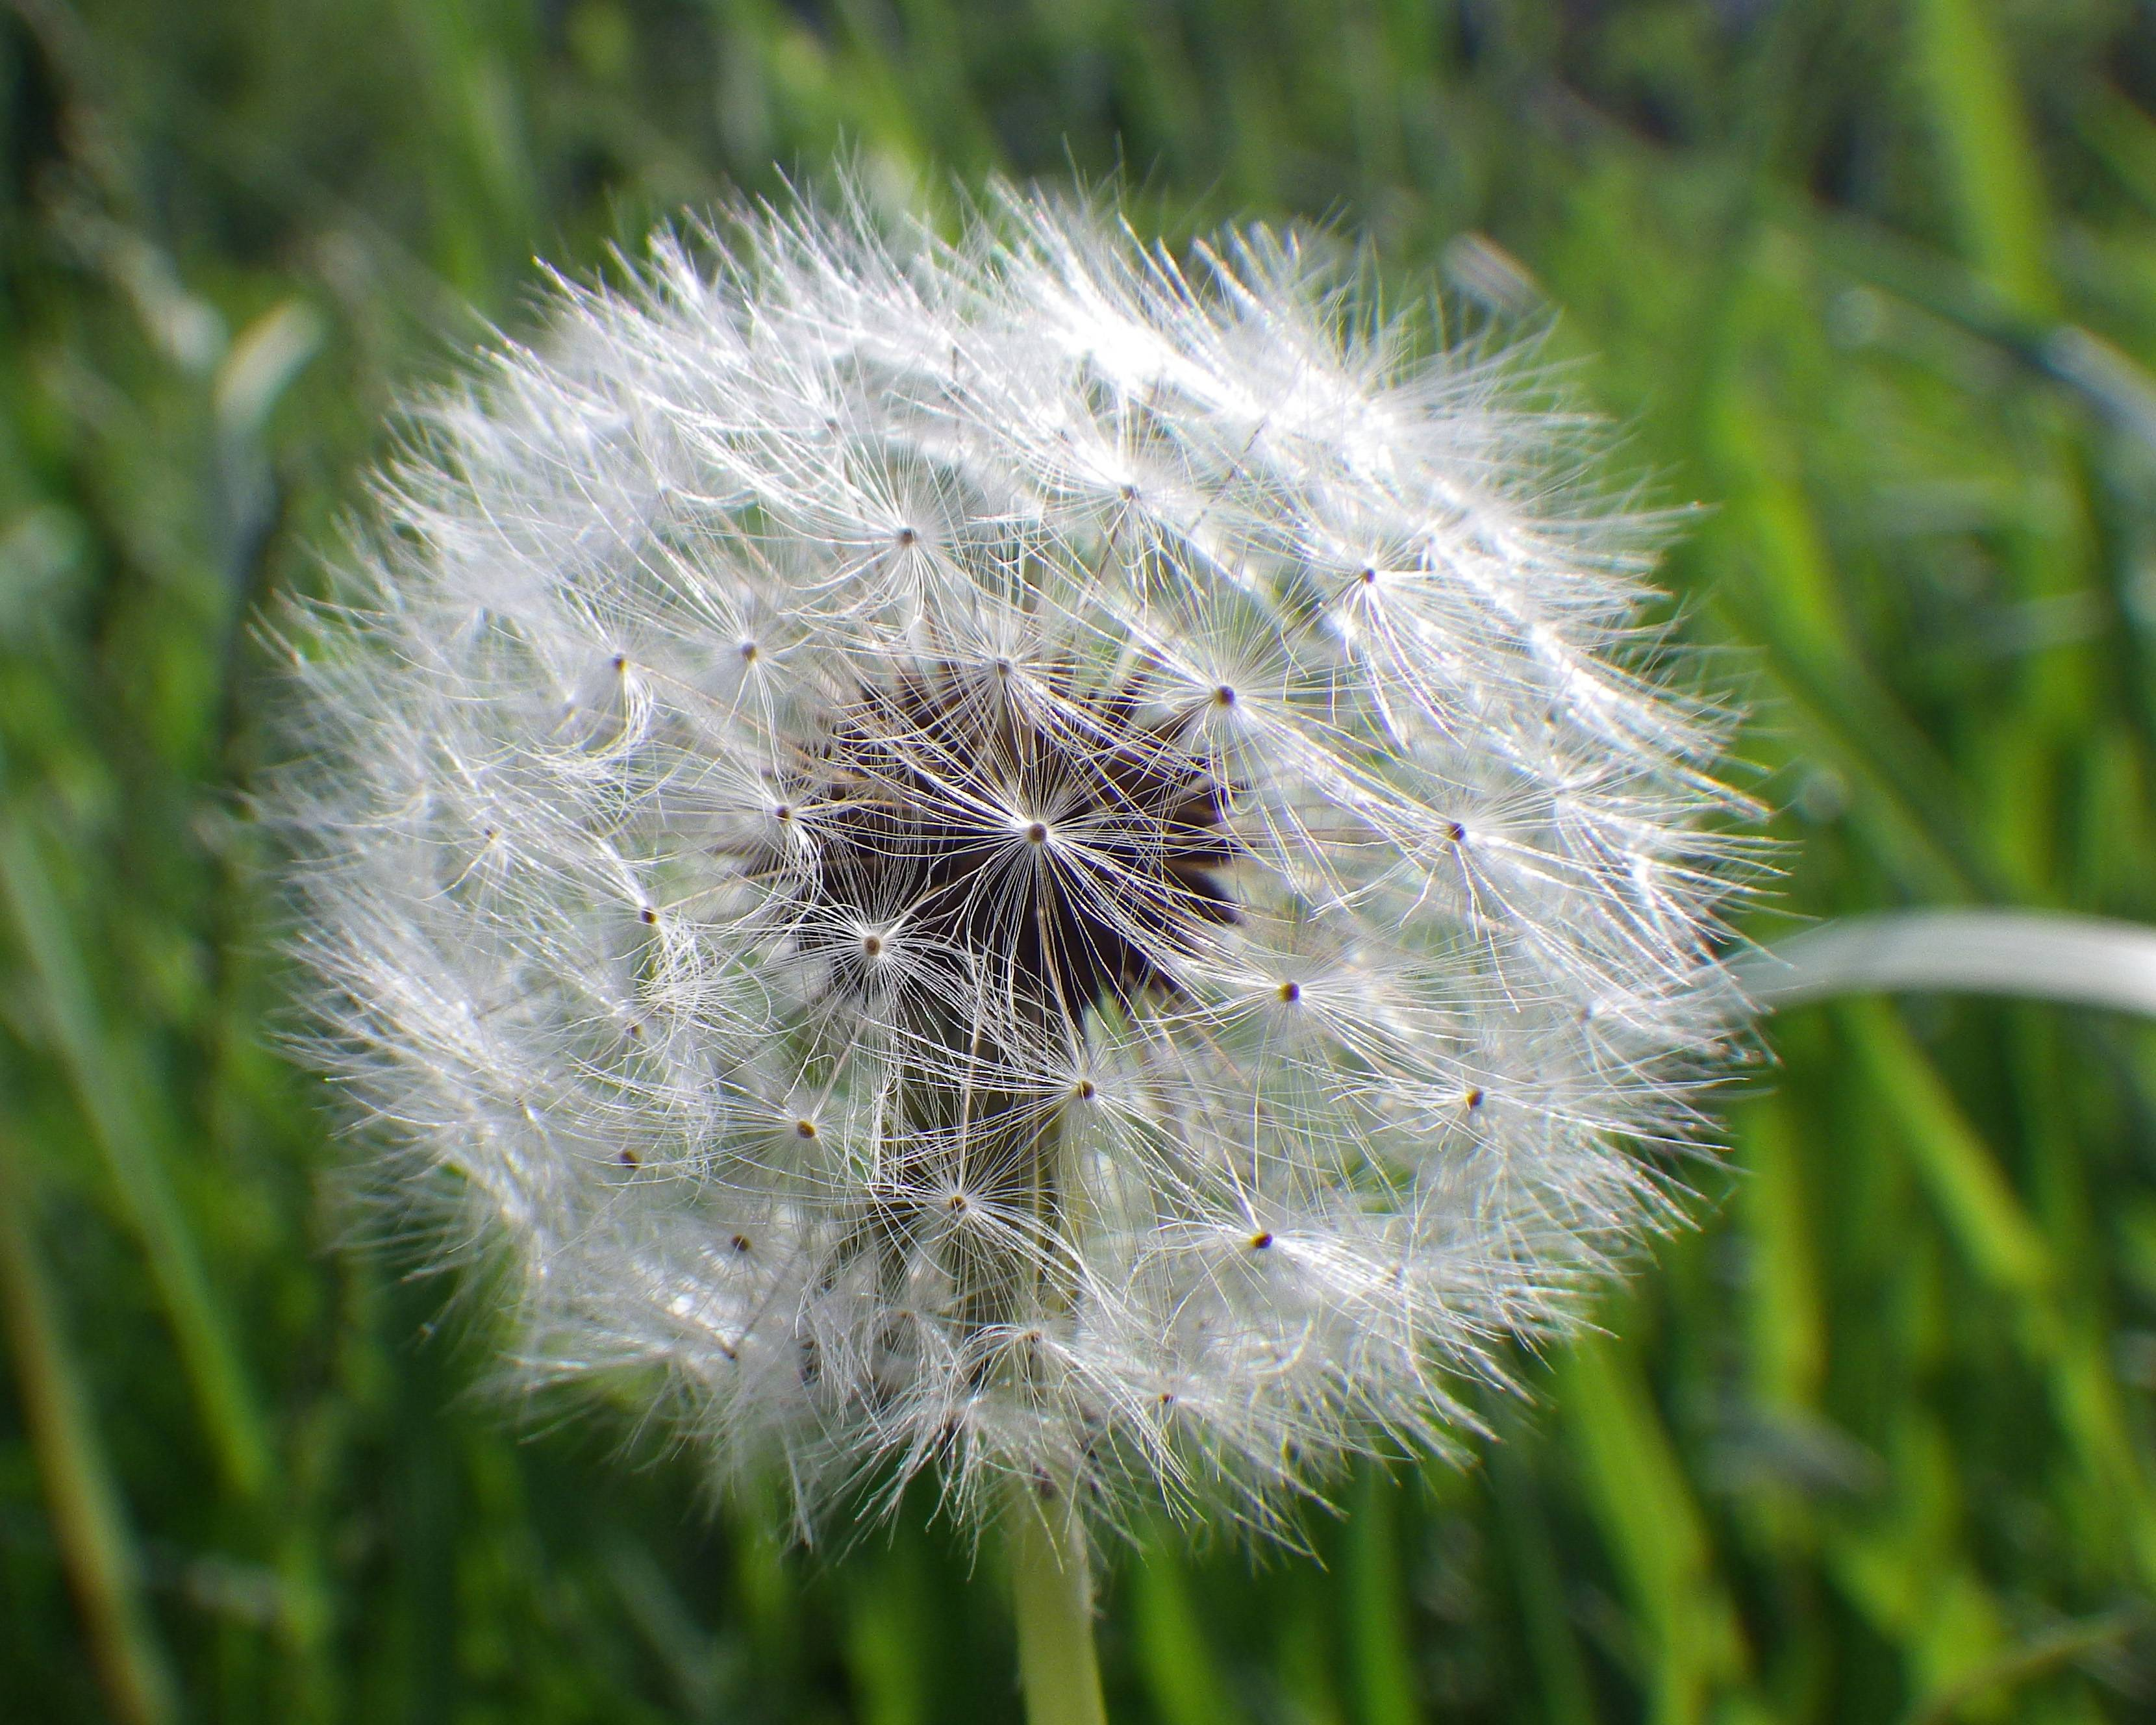 Dandelions are classic weeds of lawn and garden. Their fluffy seed heads are great for making a wish -- and for making new dandelions.